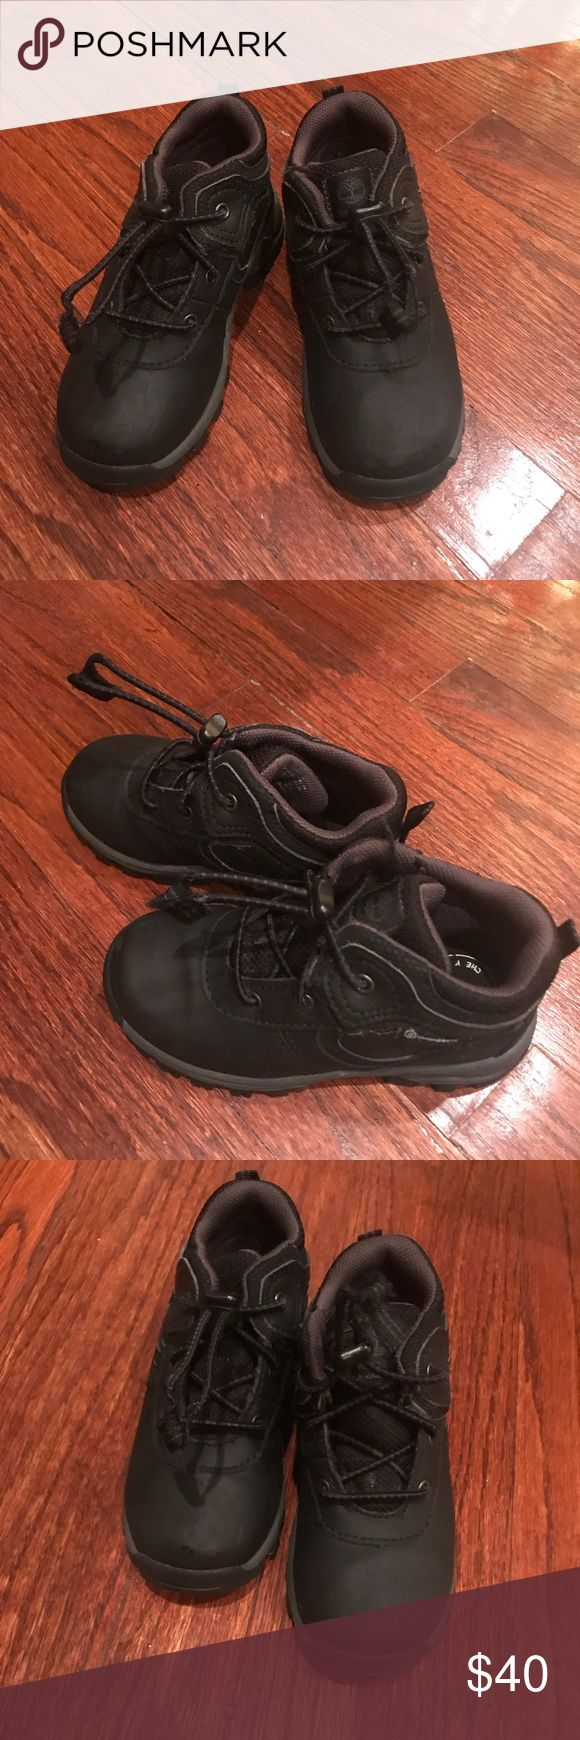 Toddler Boys Timberlands Toddler boys timberland boots. Not used often. Very clean with a very light scuff in the front of one. They are in excellent condition otherwise. Timberland Shoes Boots